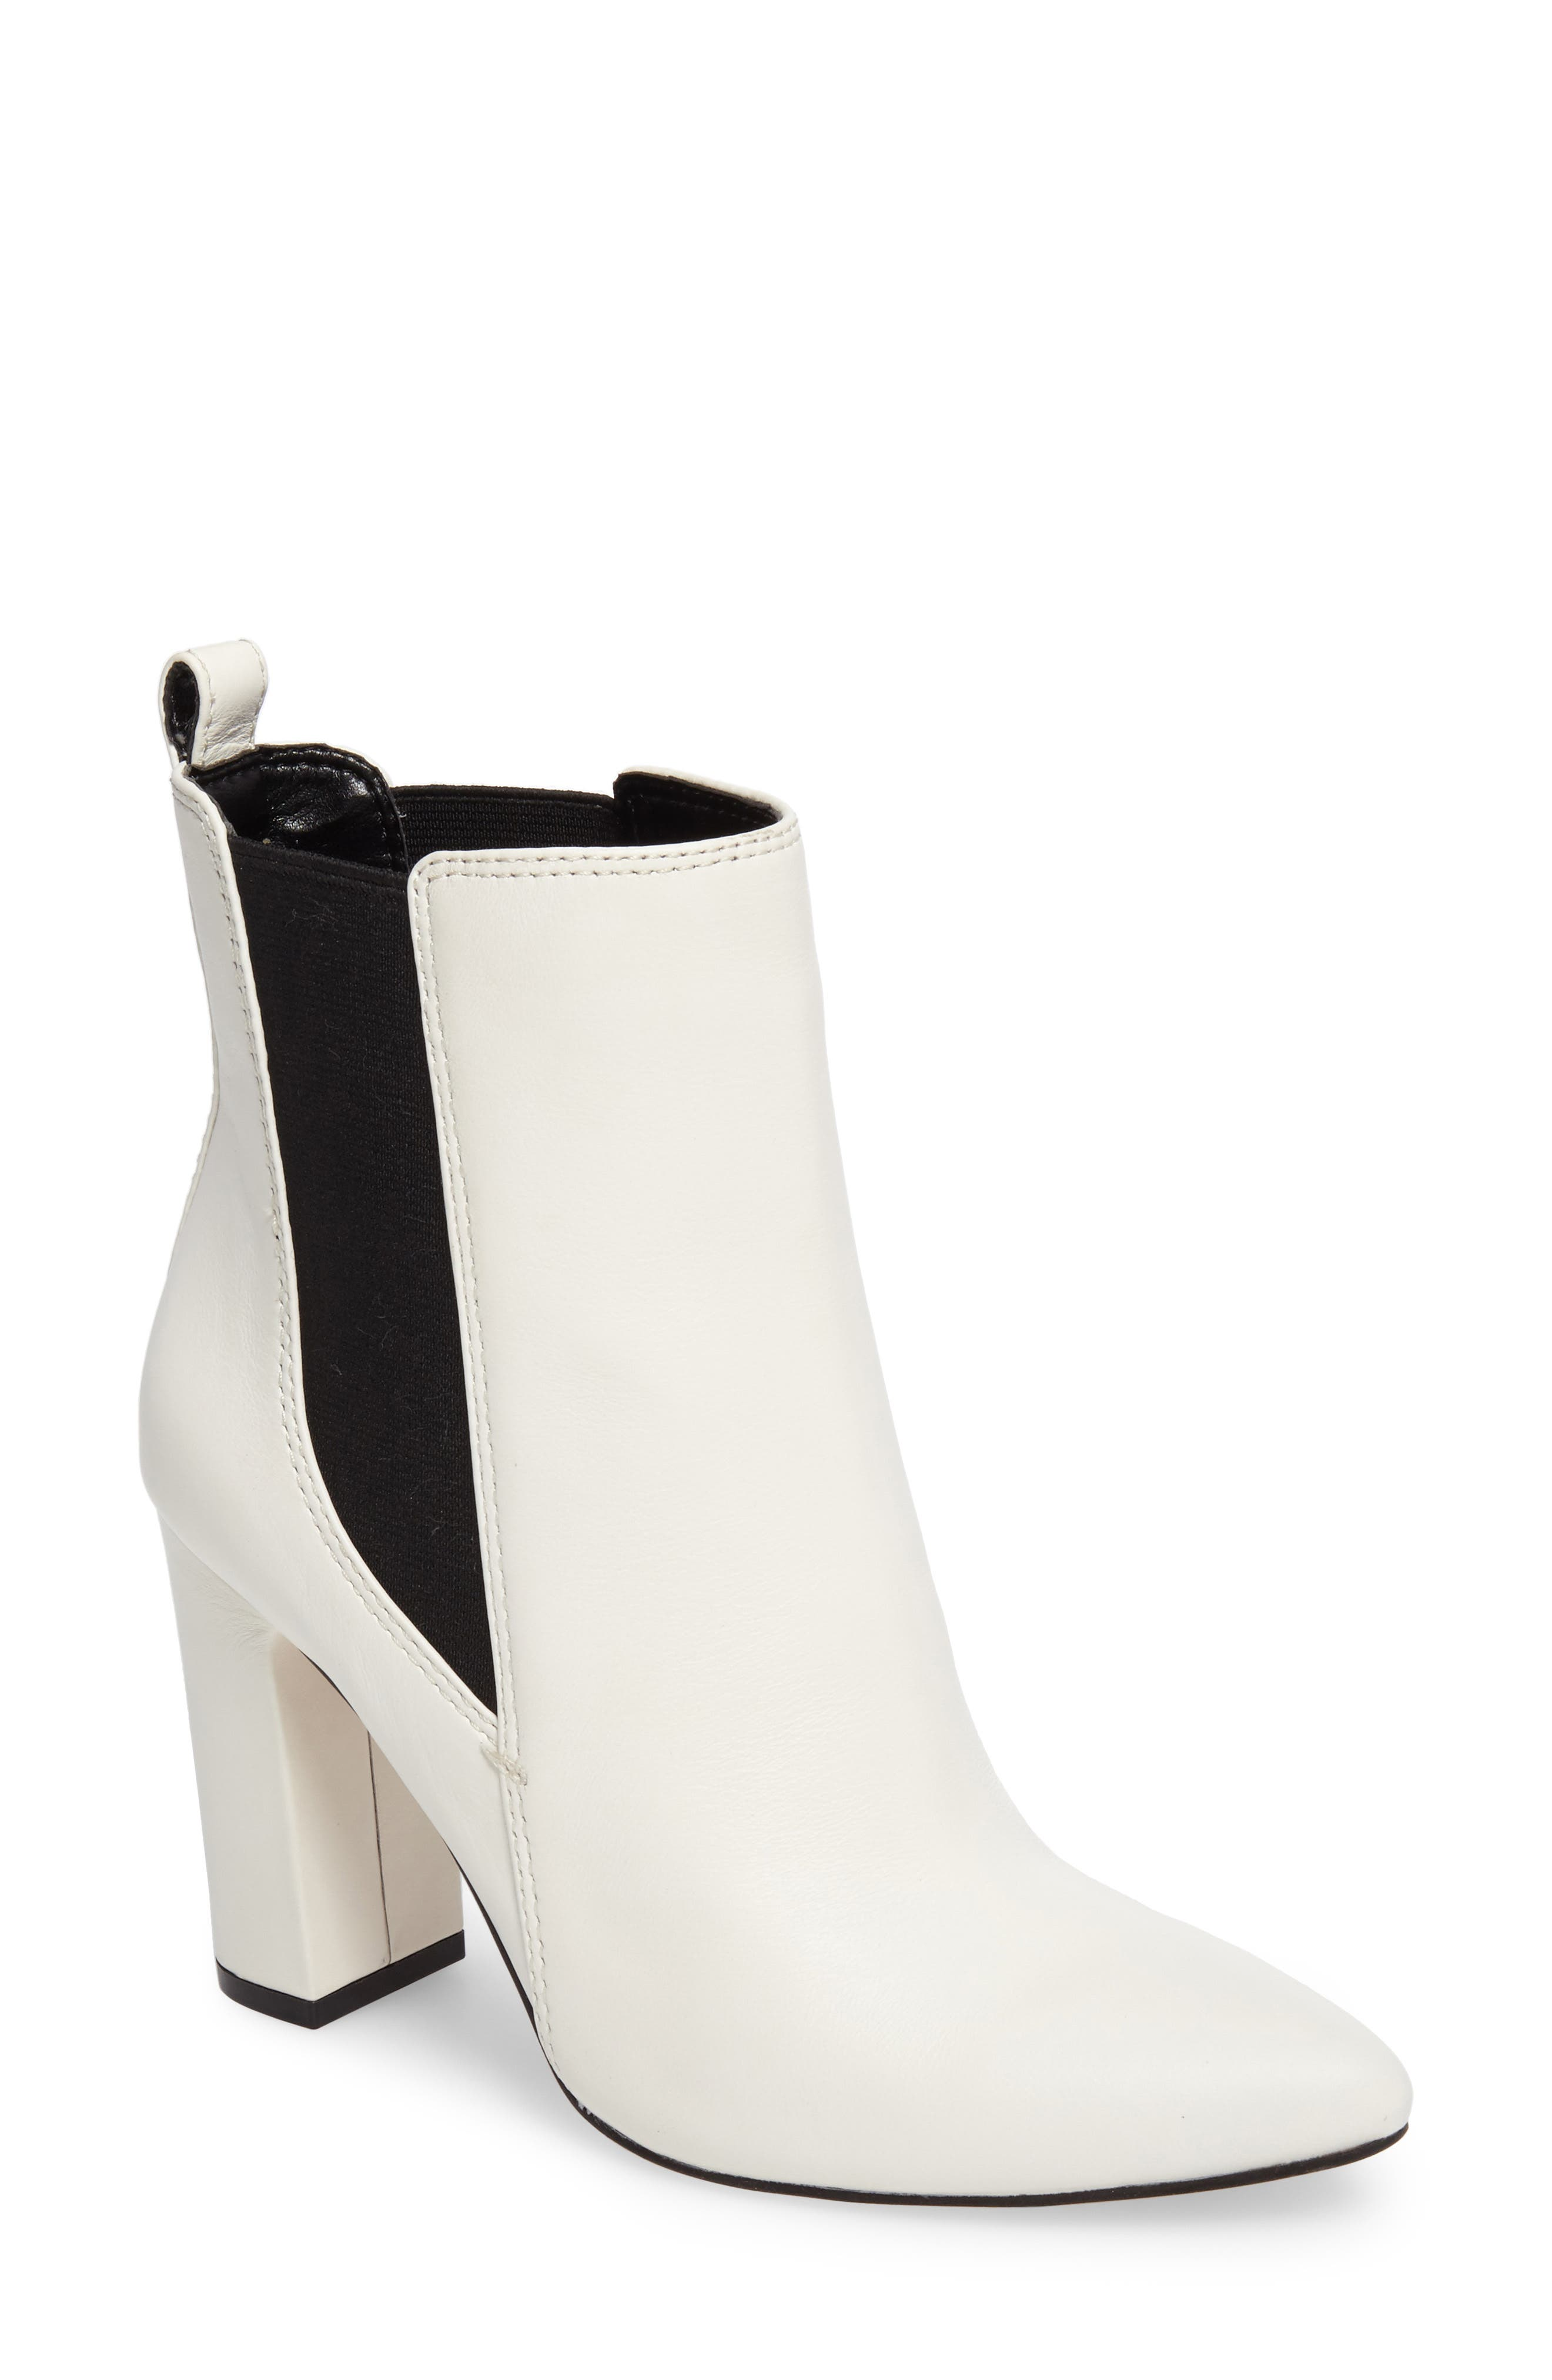 Alternate Image 1 Selected - Vince Camuto Britsy Bootie (Women)